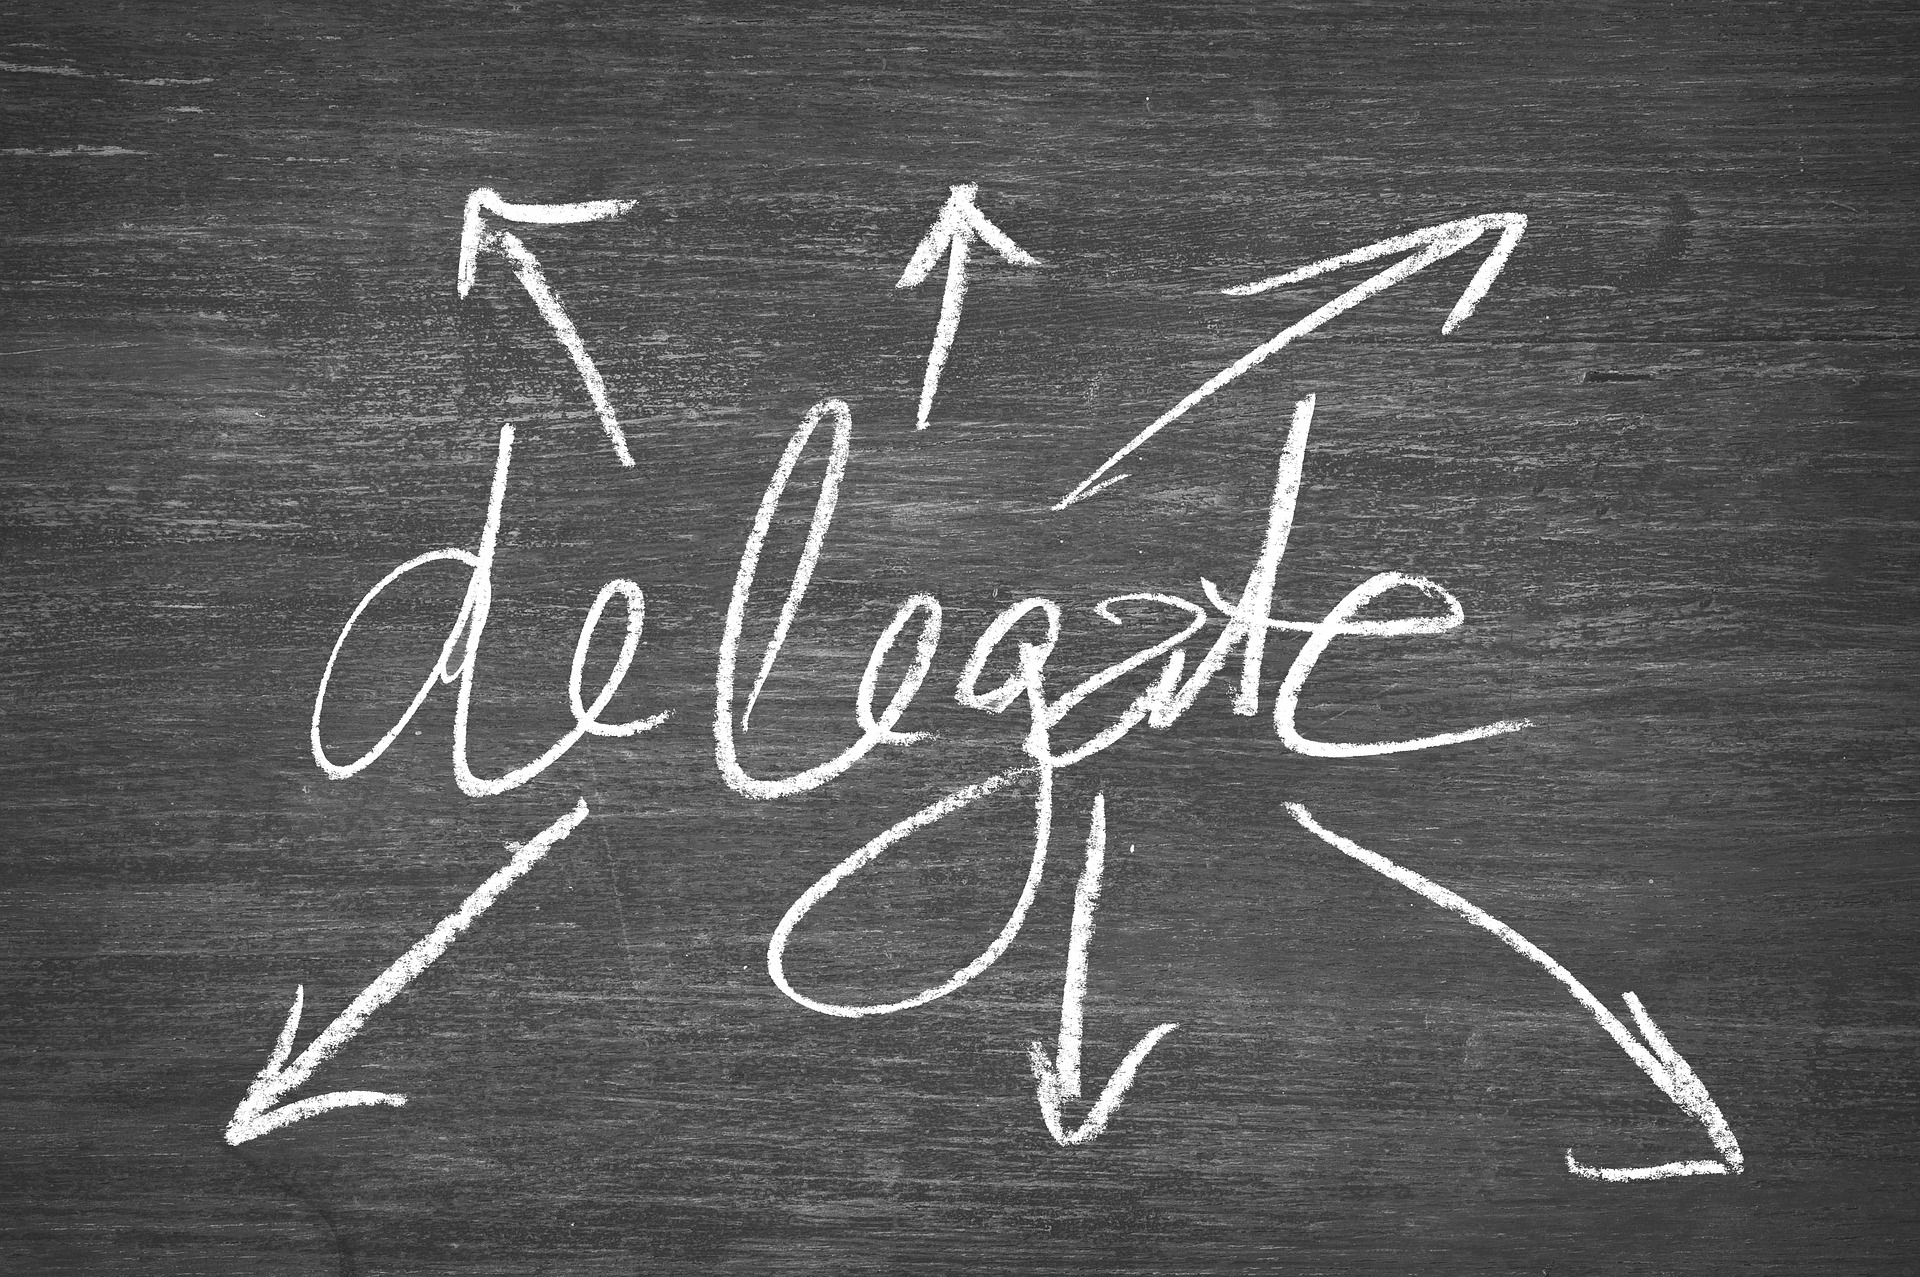 What does it means to delegate the tasks?